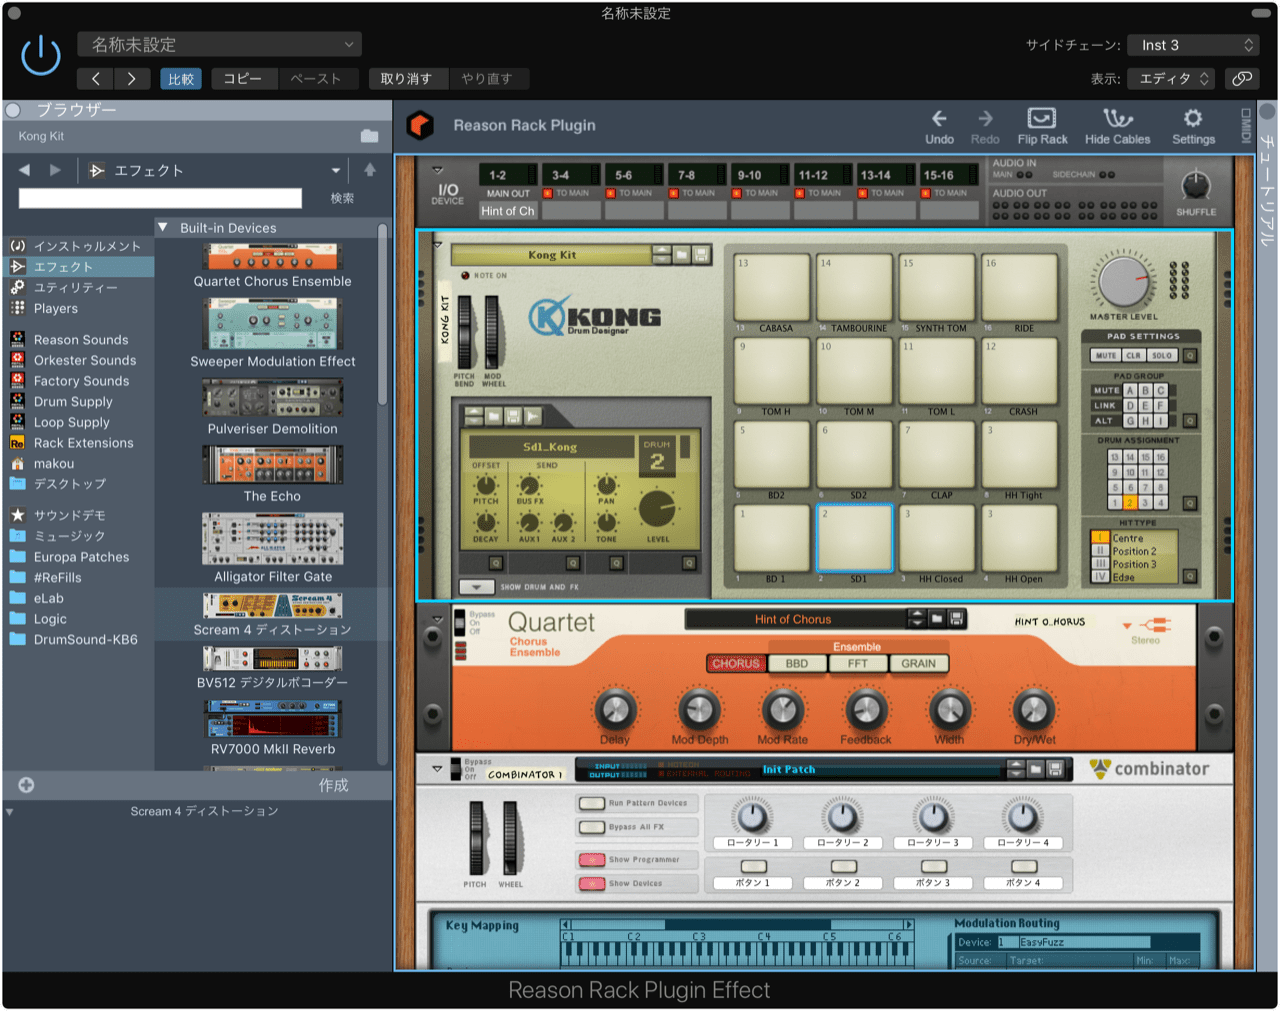 Reason Rack Plugin